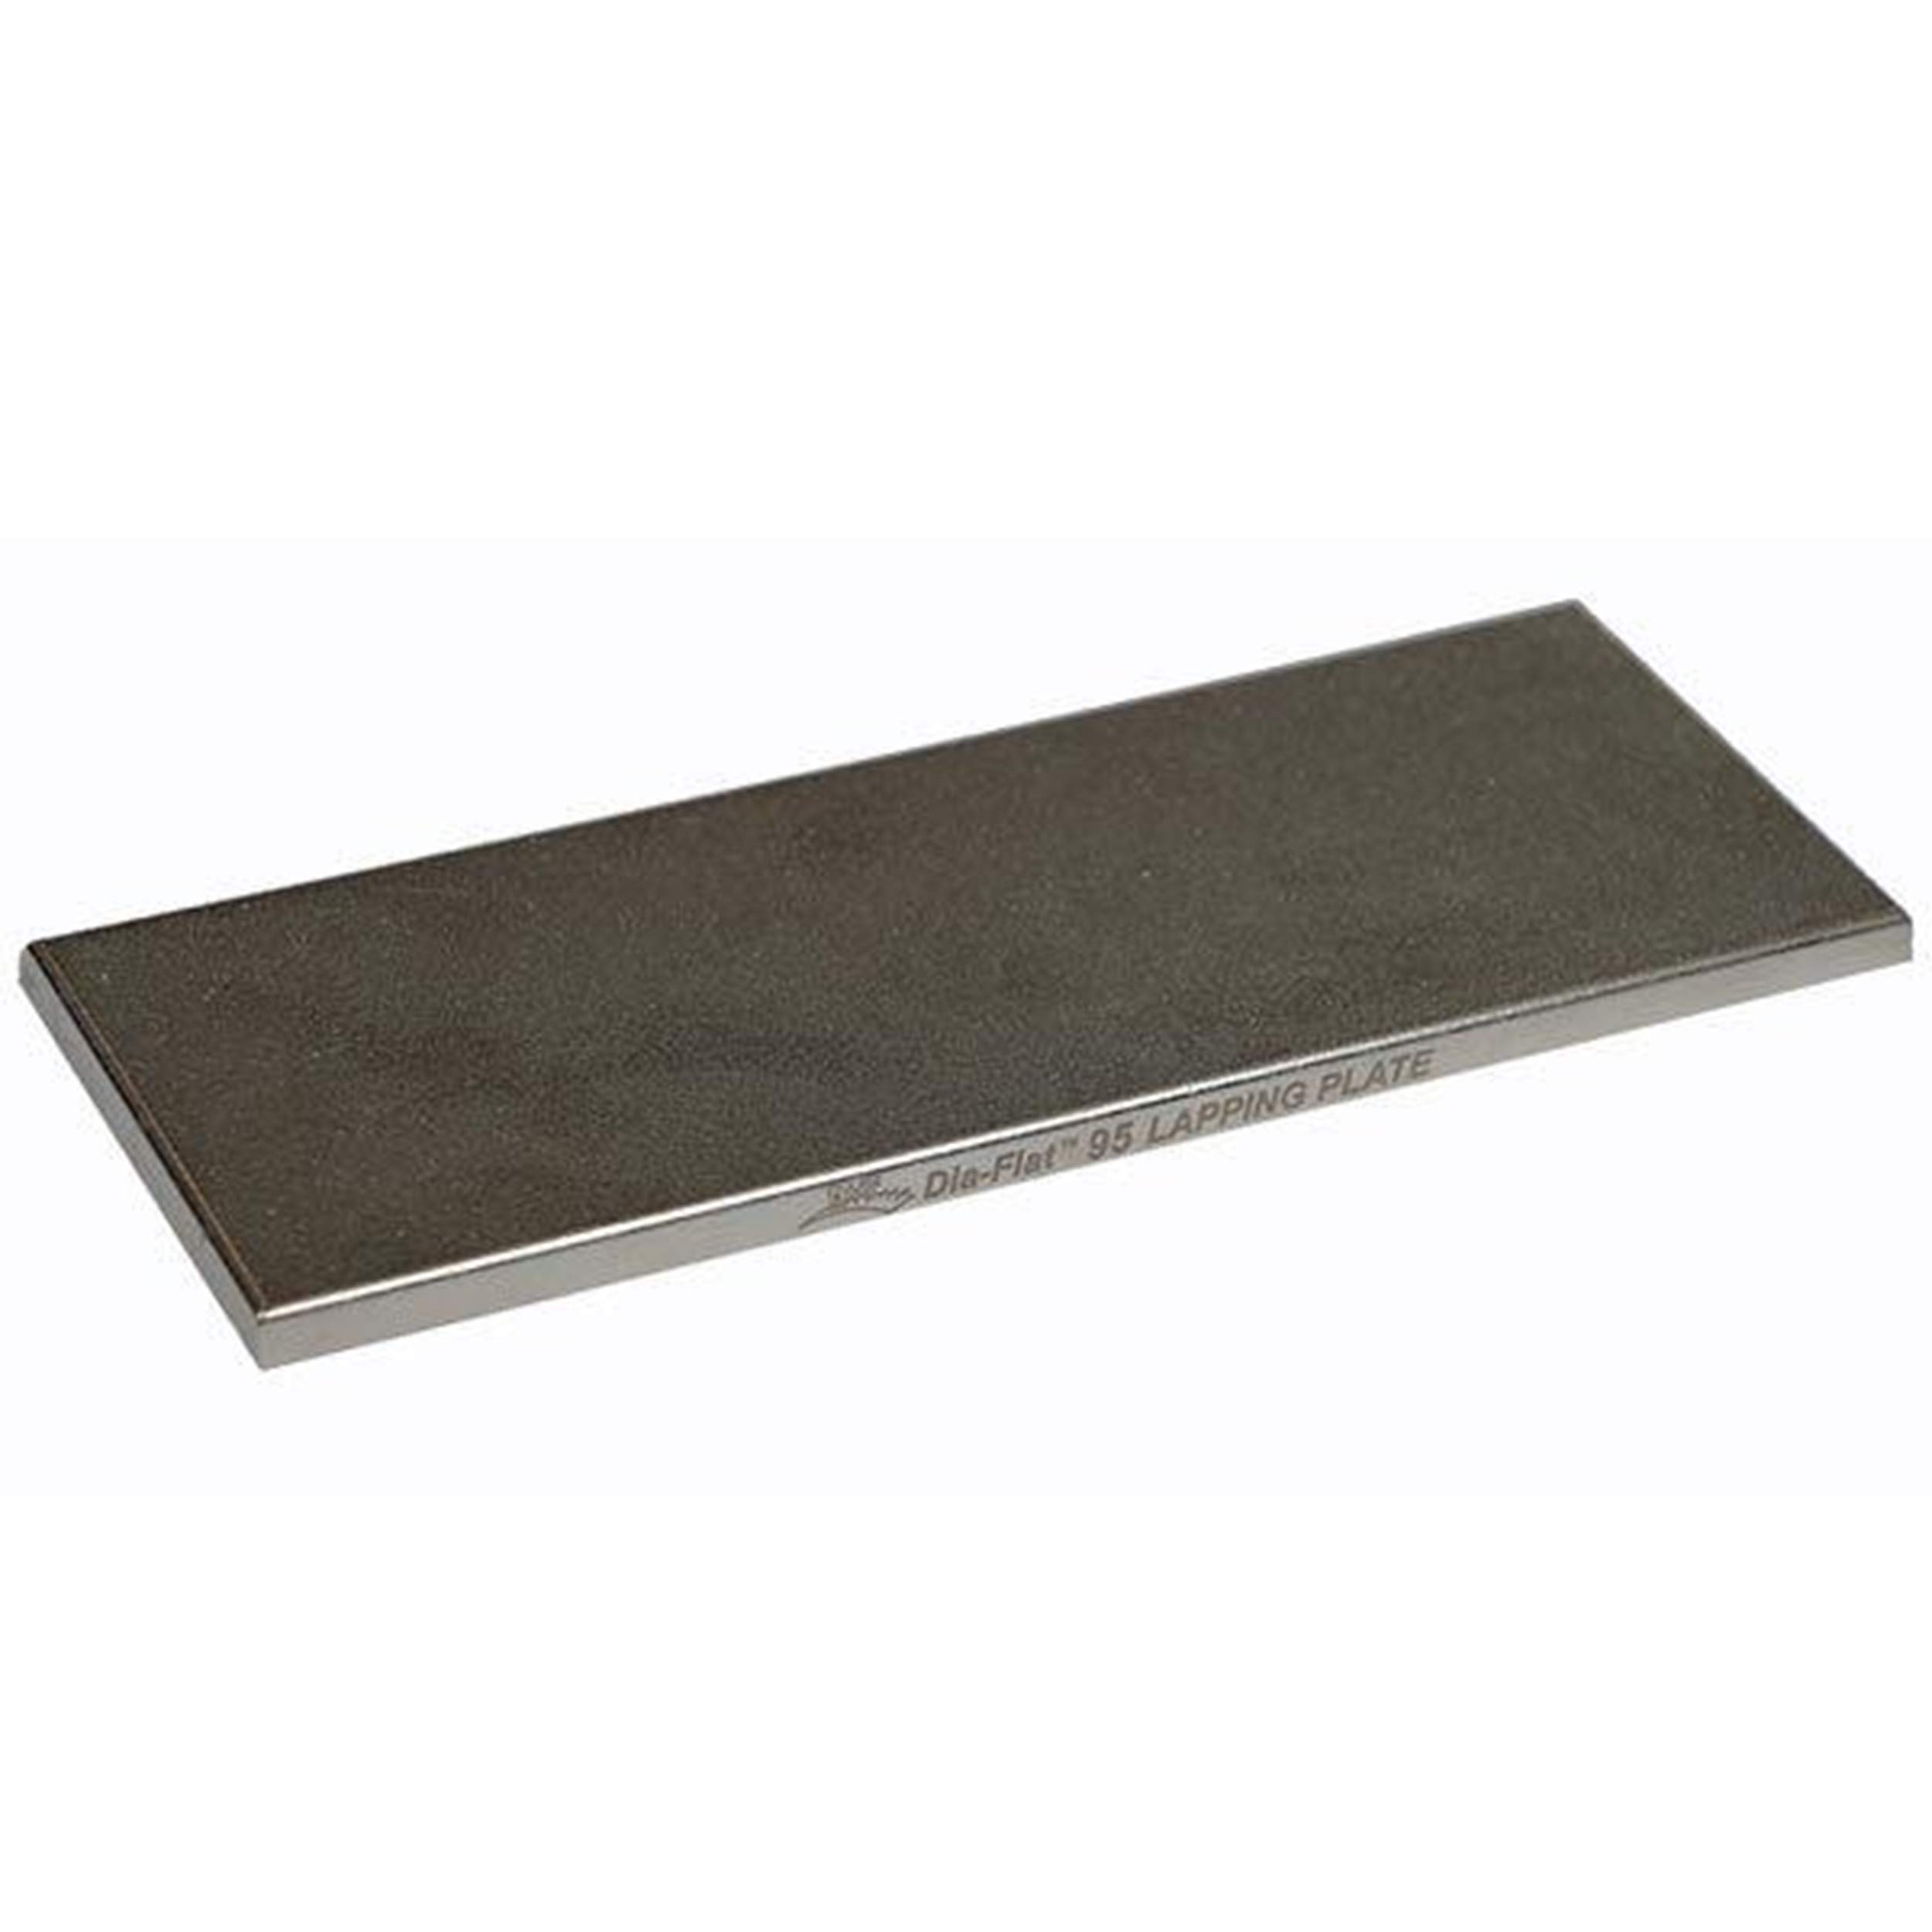 DMT DiaFlat-95 Lapping Plate, 10'' x 4'' – 160 Grit